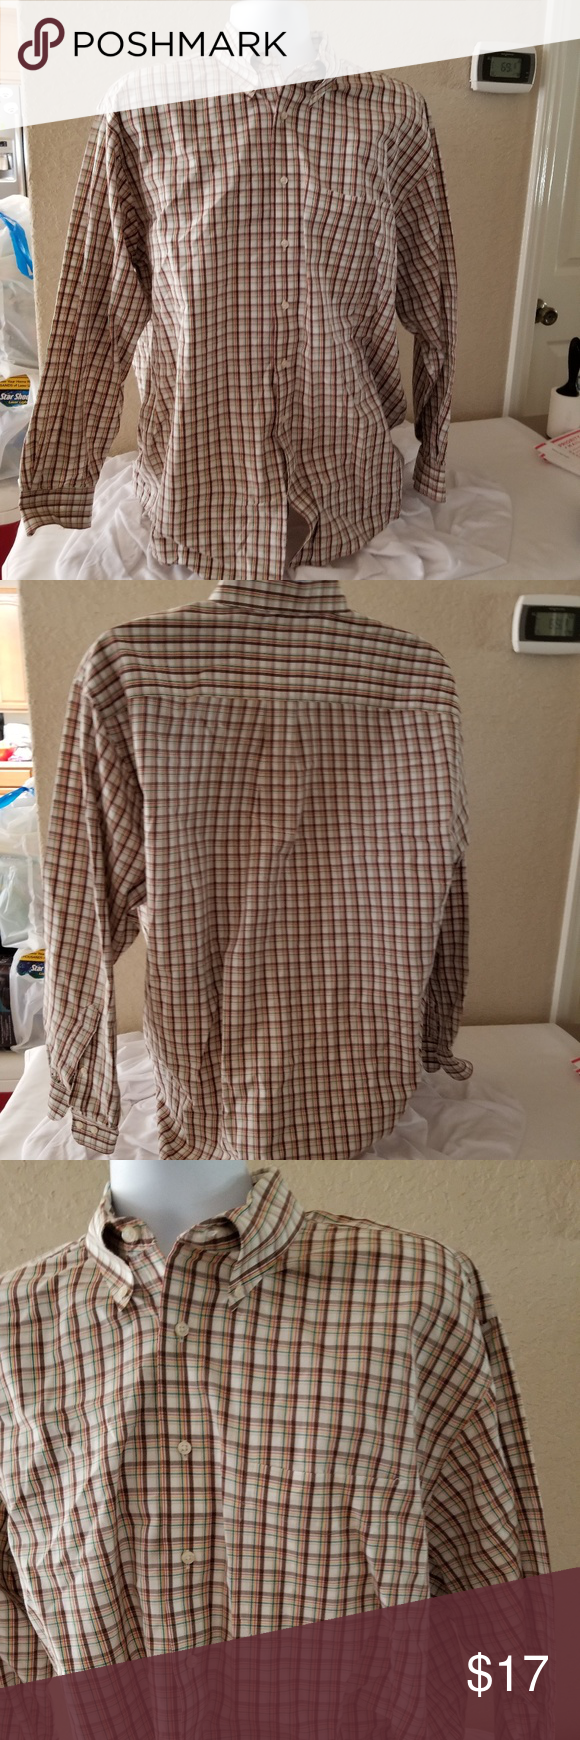 Jos A Bank plaid long sleeve shirt For your consideration